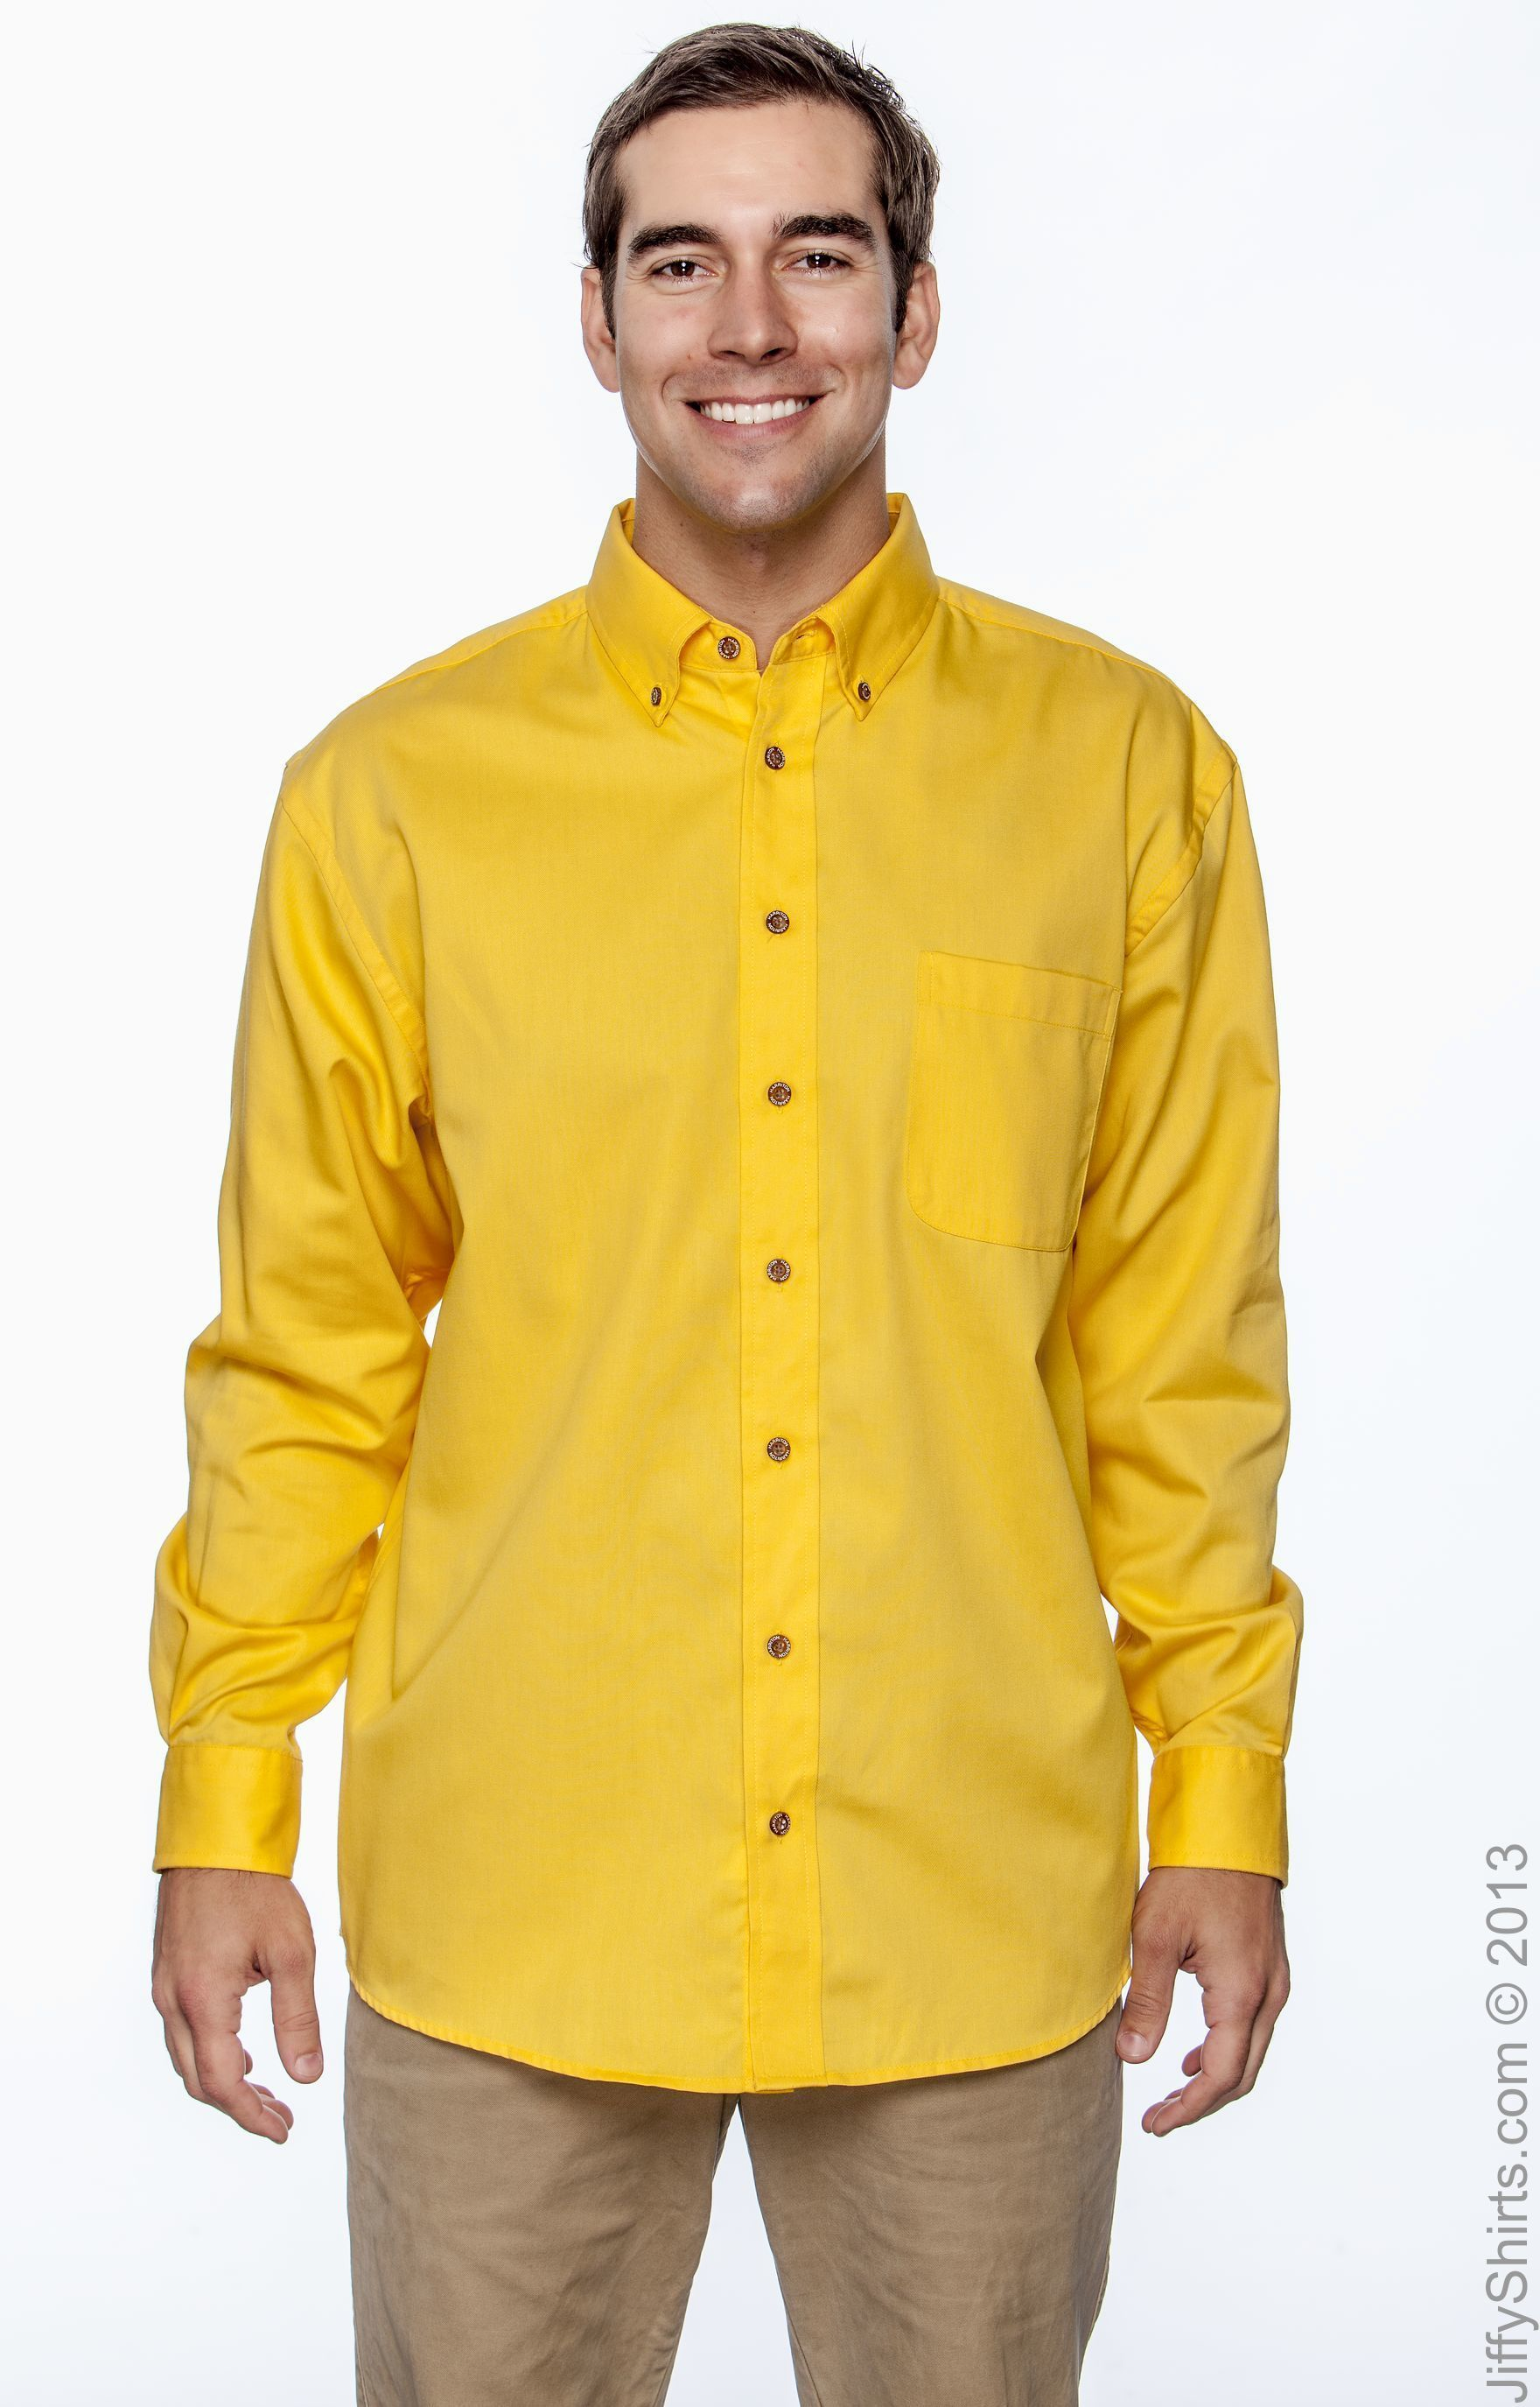 5XL SUNRAY YELLOW Harriton Mens Easy Blend Long-Sleeve Twill Shirt with Stain-Release